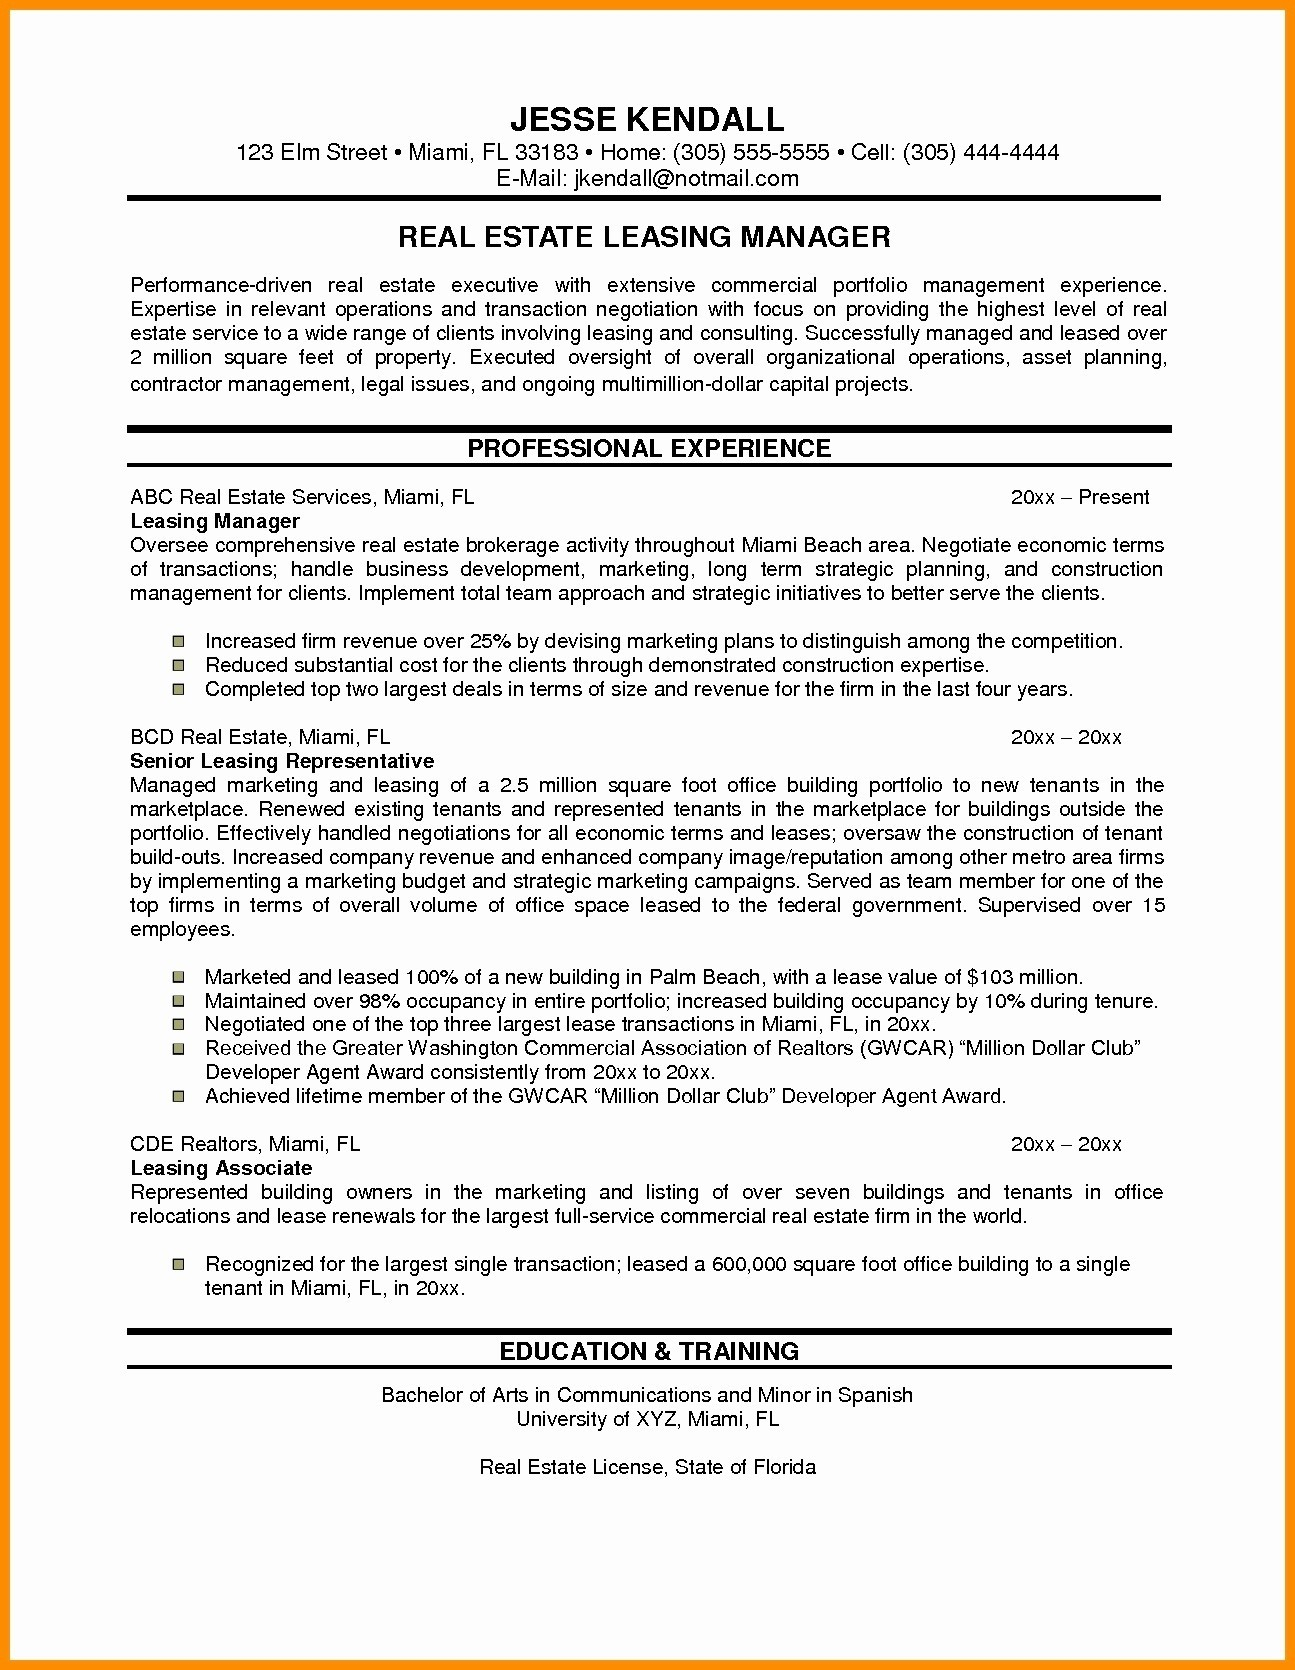 sales executive resume template Collection-Management Cover Letter New Sample Resume For Property Manager Bsw Resume 0d Property Management 11-m